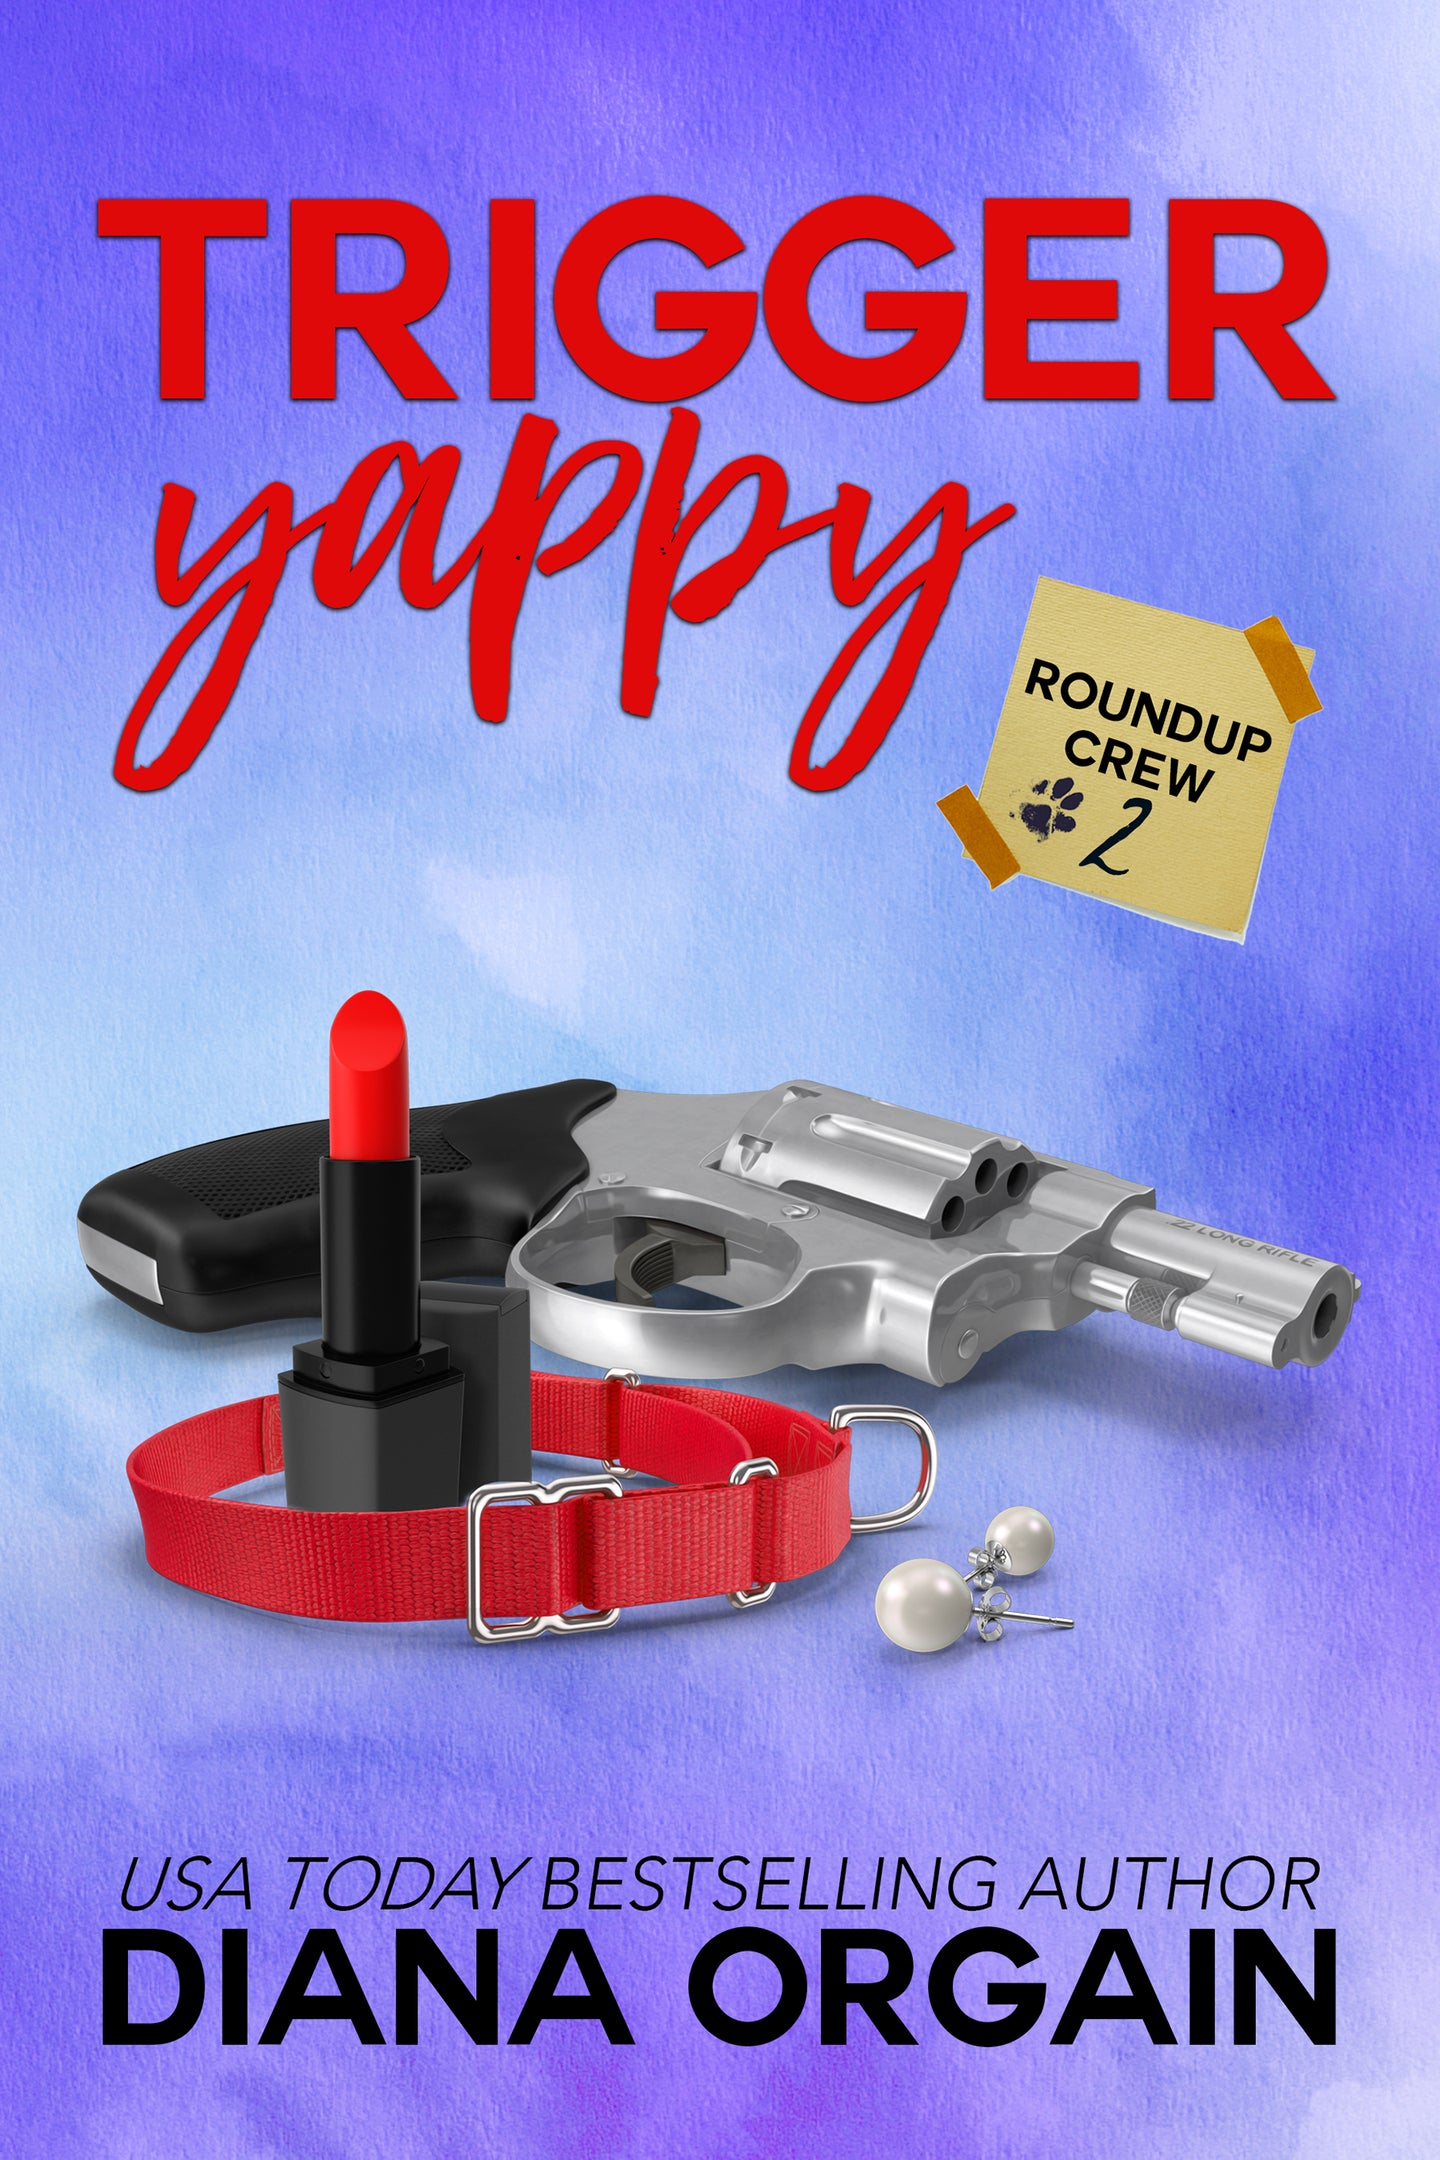 Trigger Yappy (Book 2 in the Roundup Crew Mystery Series) - Diana Orgain